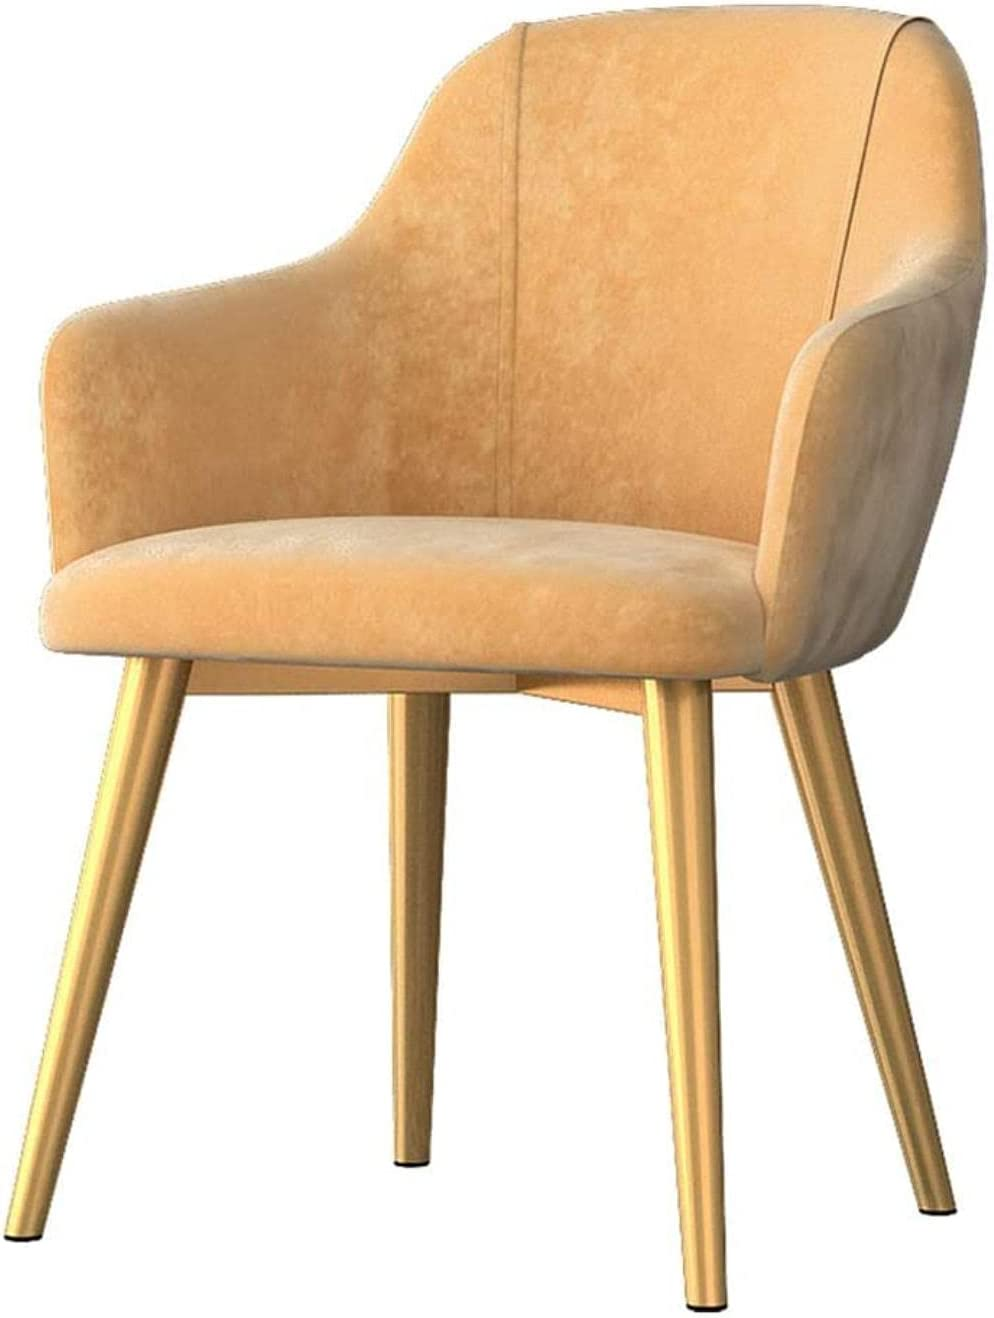 Chairs - Dining sold out Chair Yellow Velvet Seat Room Side low-pricing Cafe Living